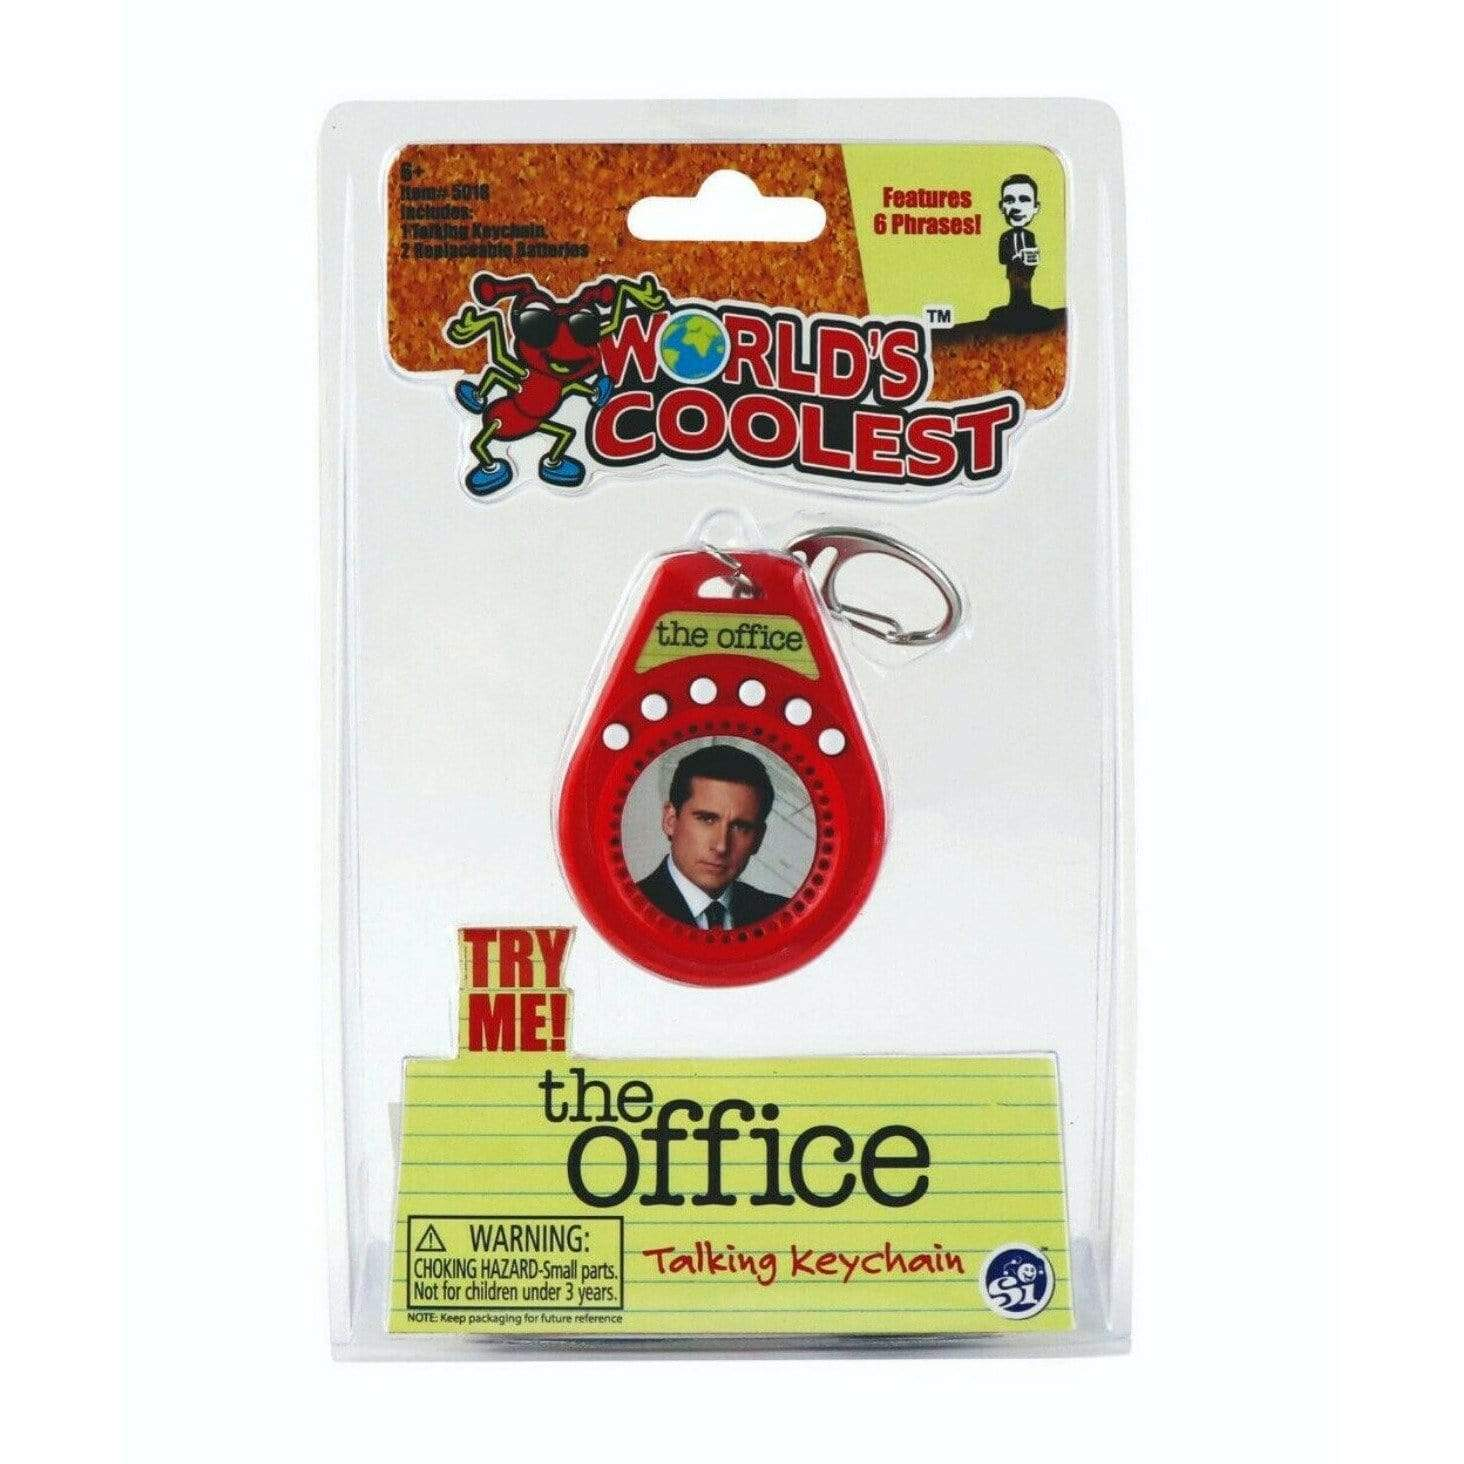 World's Coolest: The Office Talking Keychain Super Impulse Puzzles/Playthings